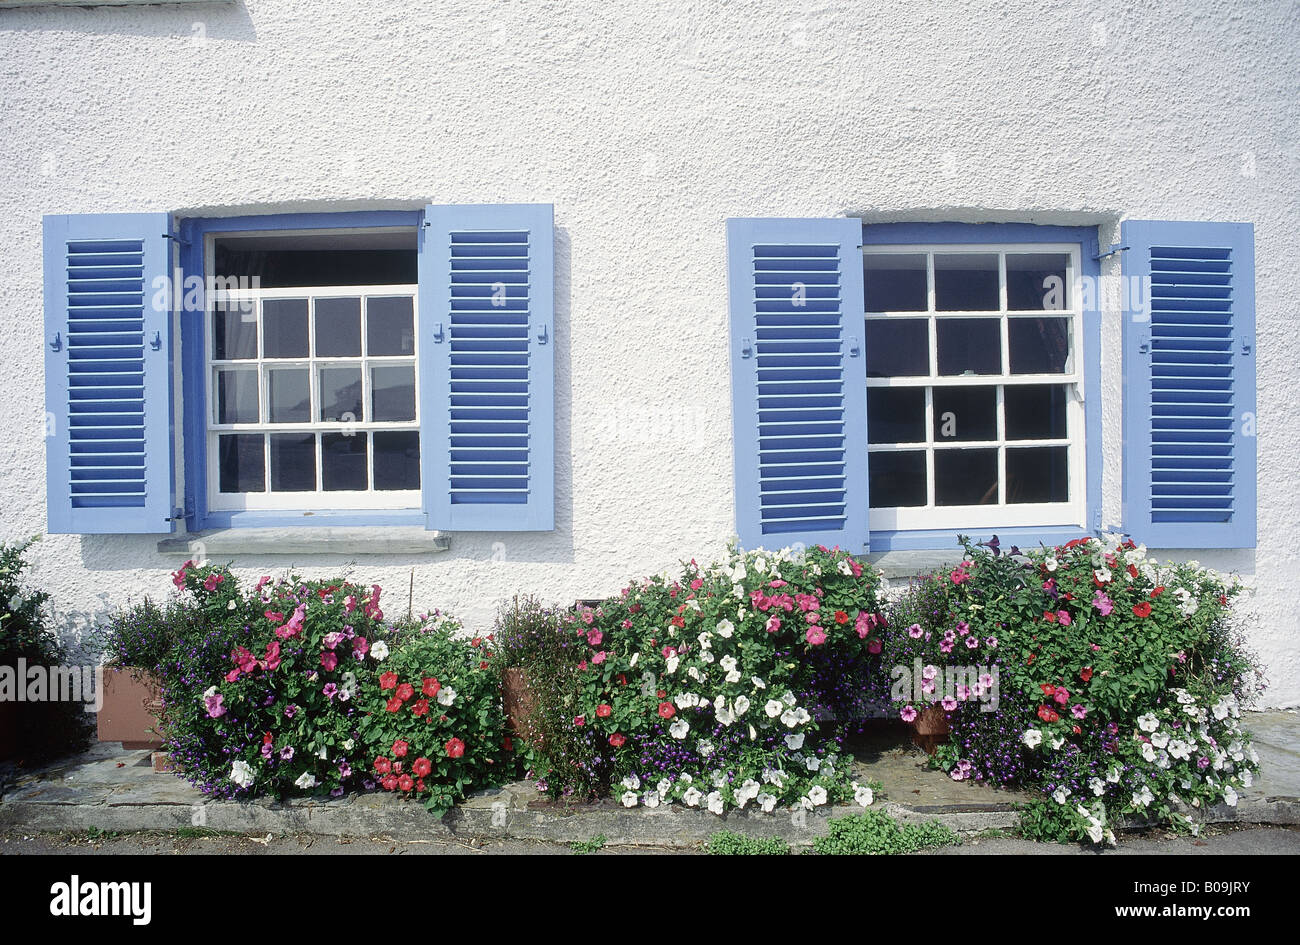 White house with blue shuttered windows Plants growing in tubs and ...